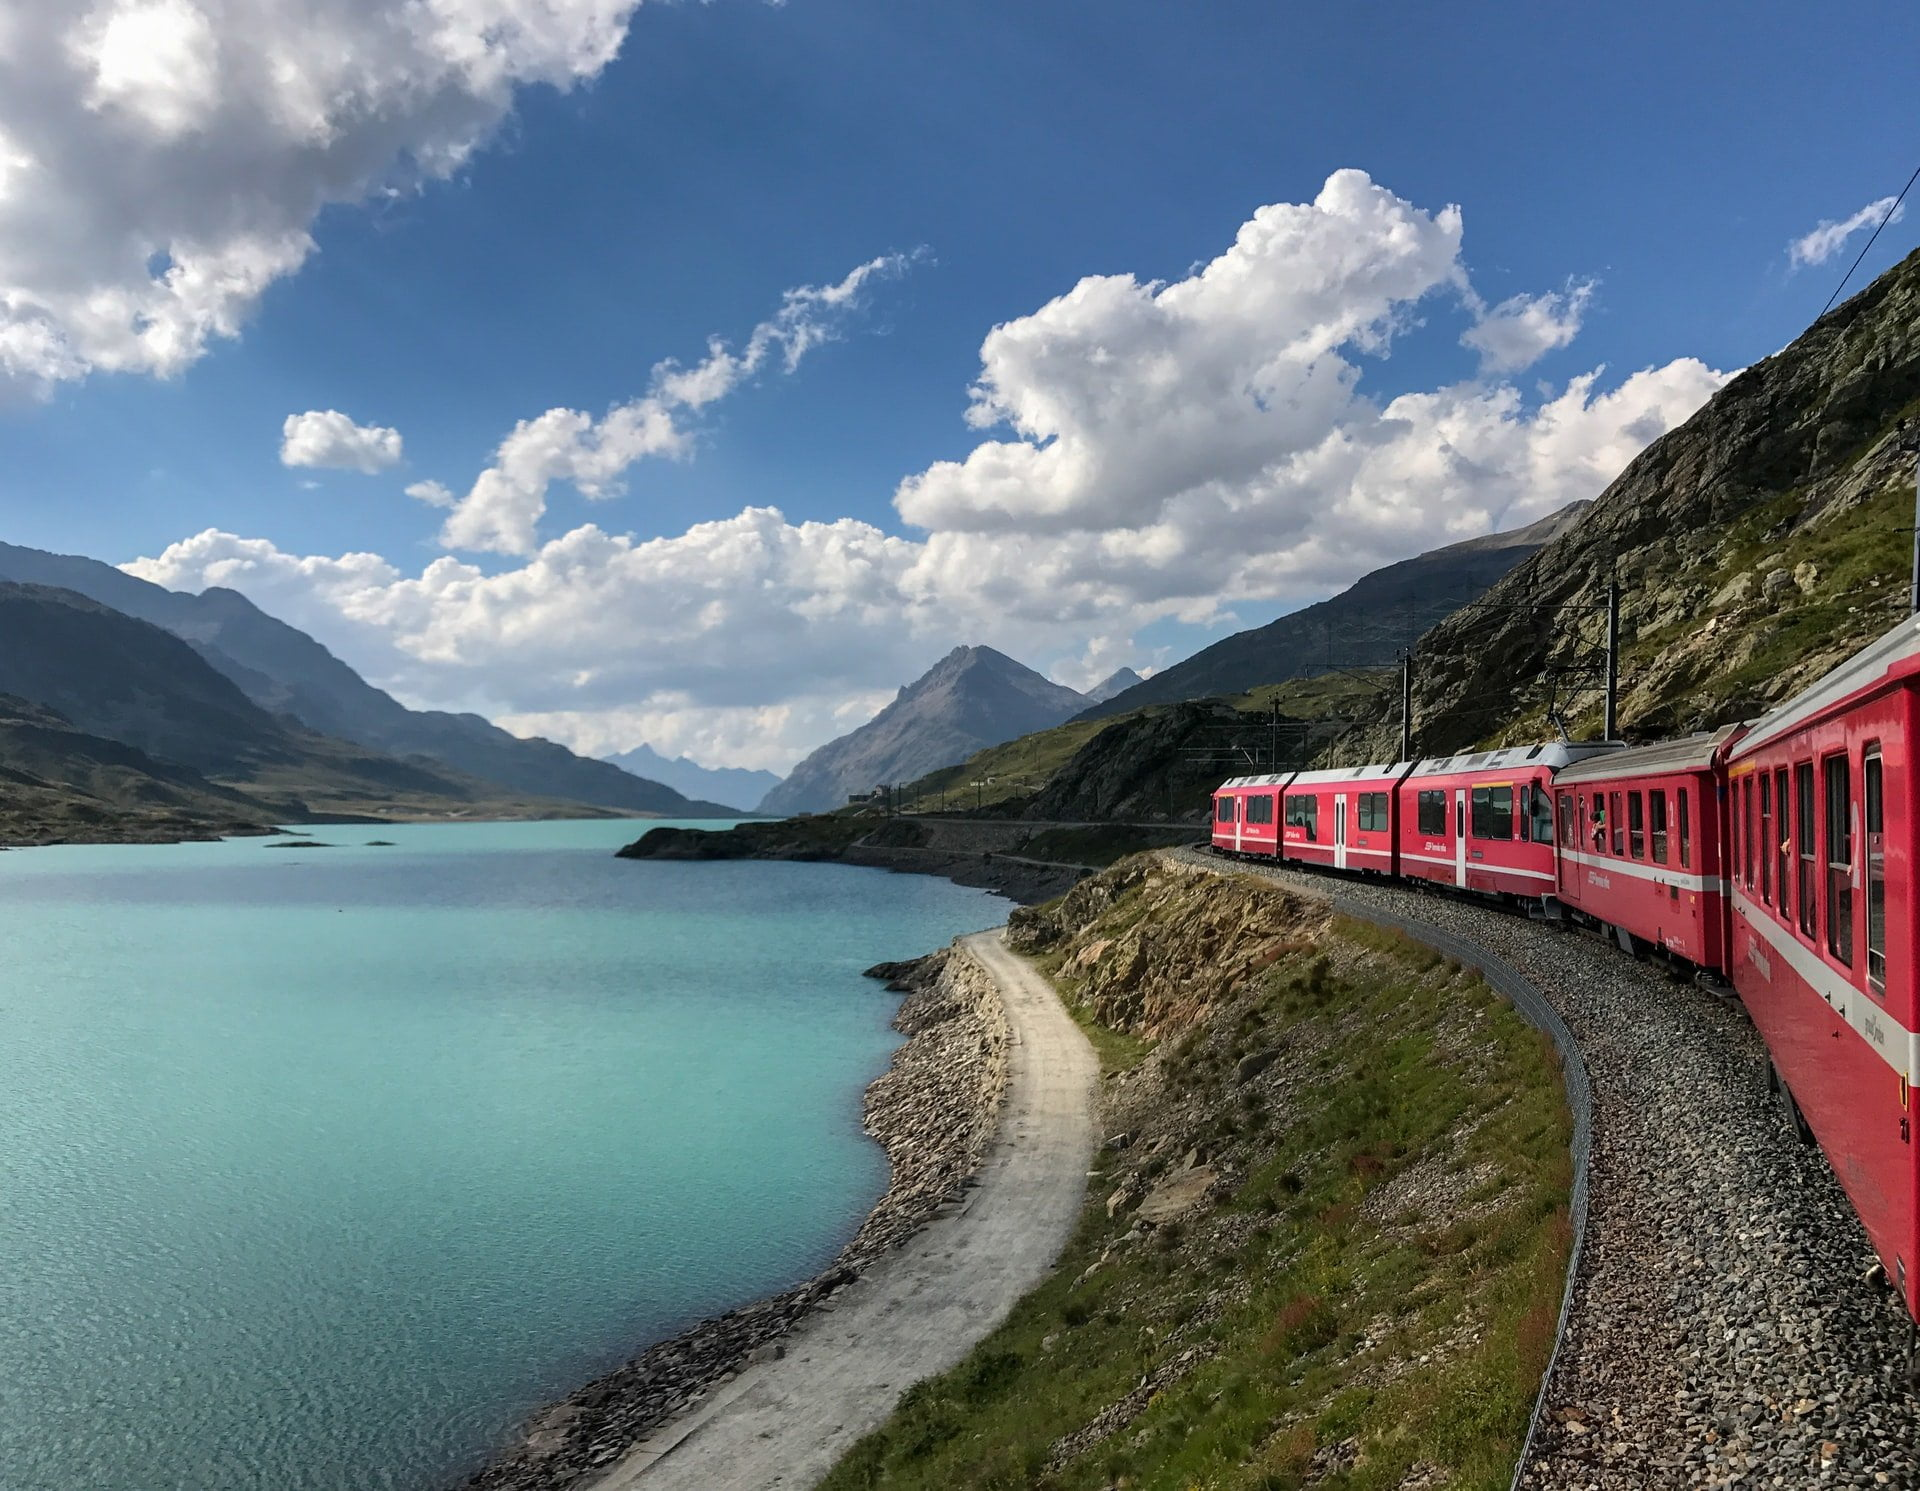 Green Travel - Is Traveling by Train Finally Replacing The Plane?